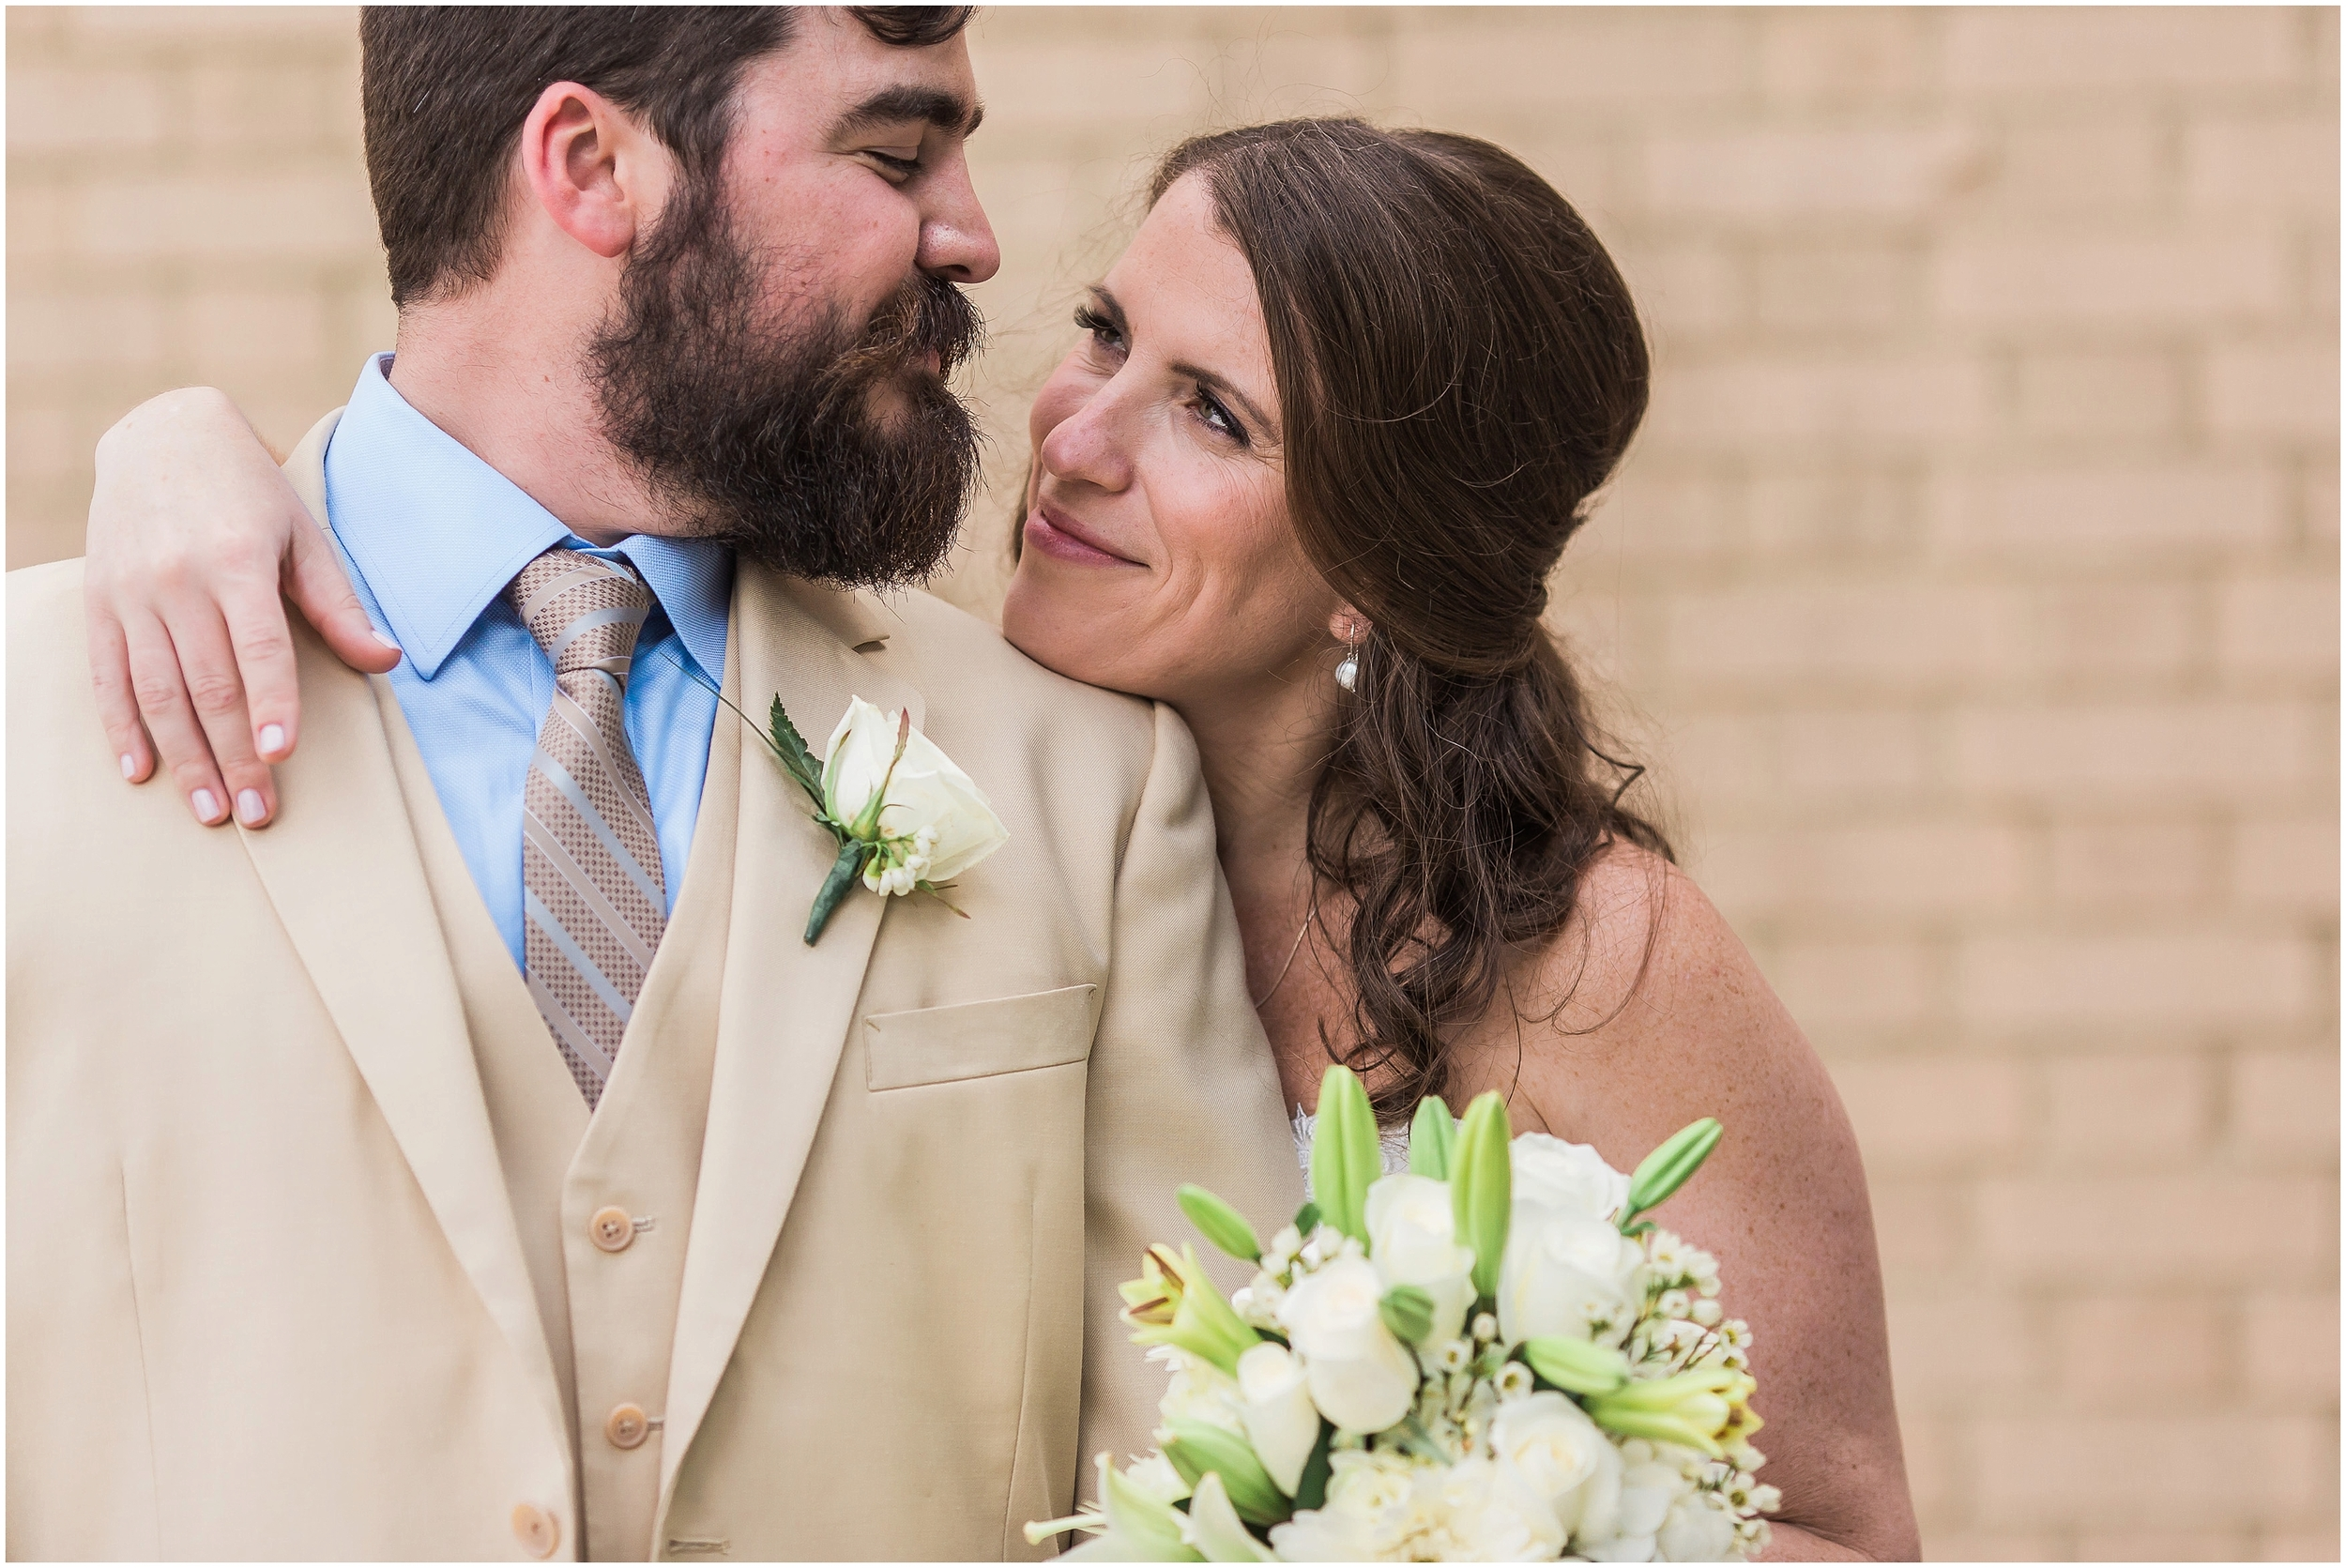 Shelley+Matt Sneak Peek-114.jpg